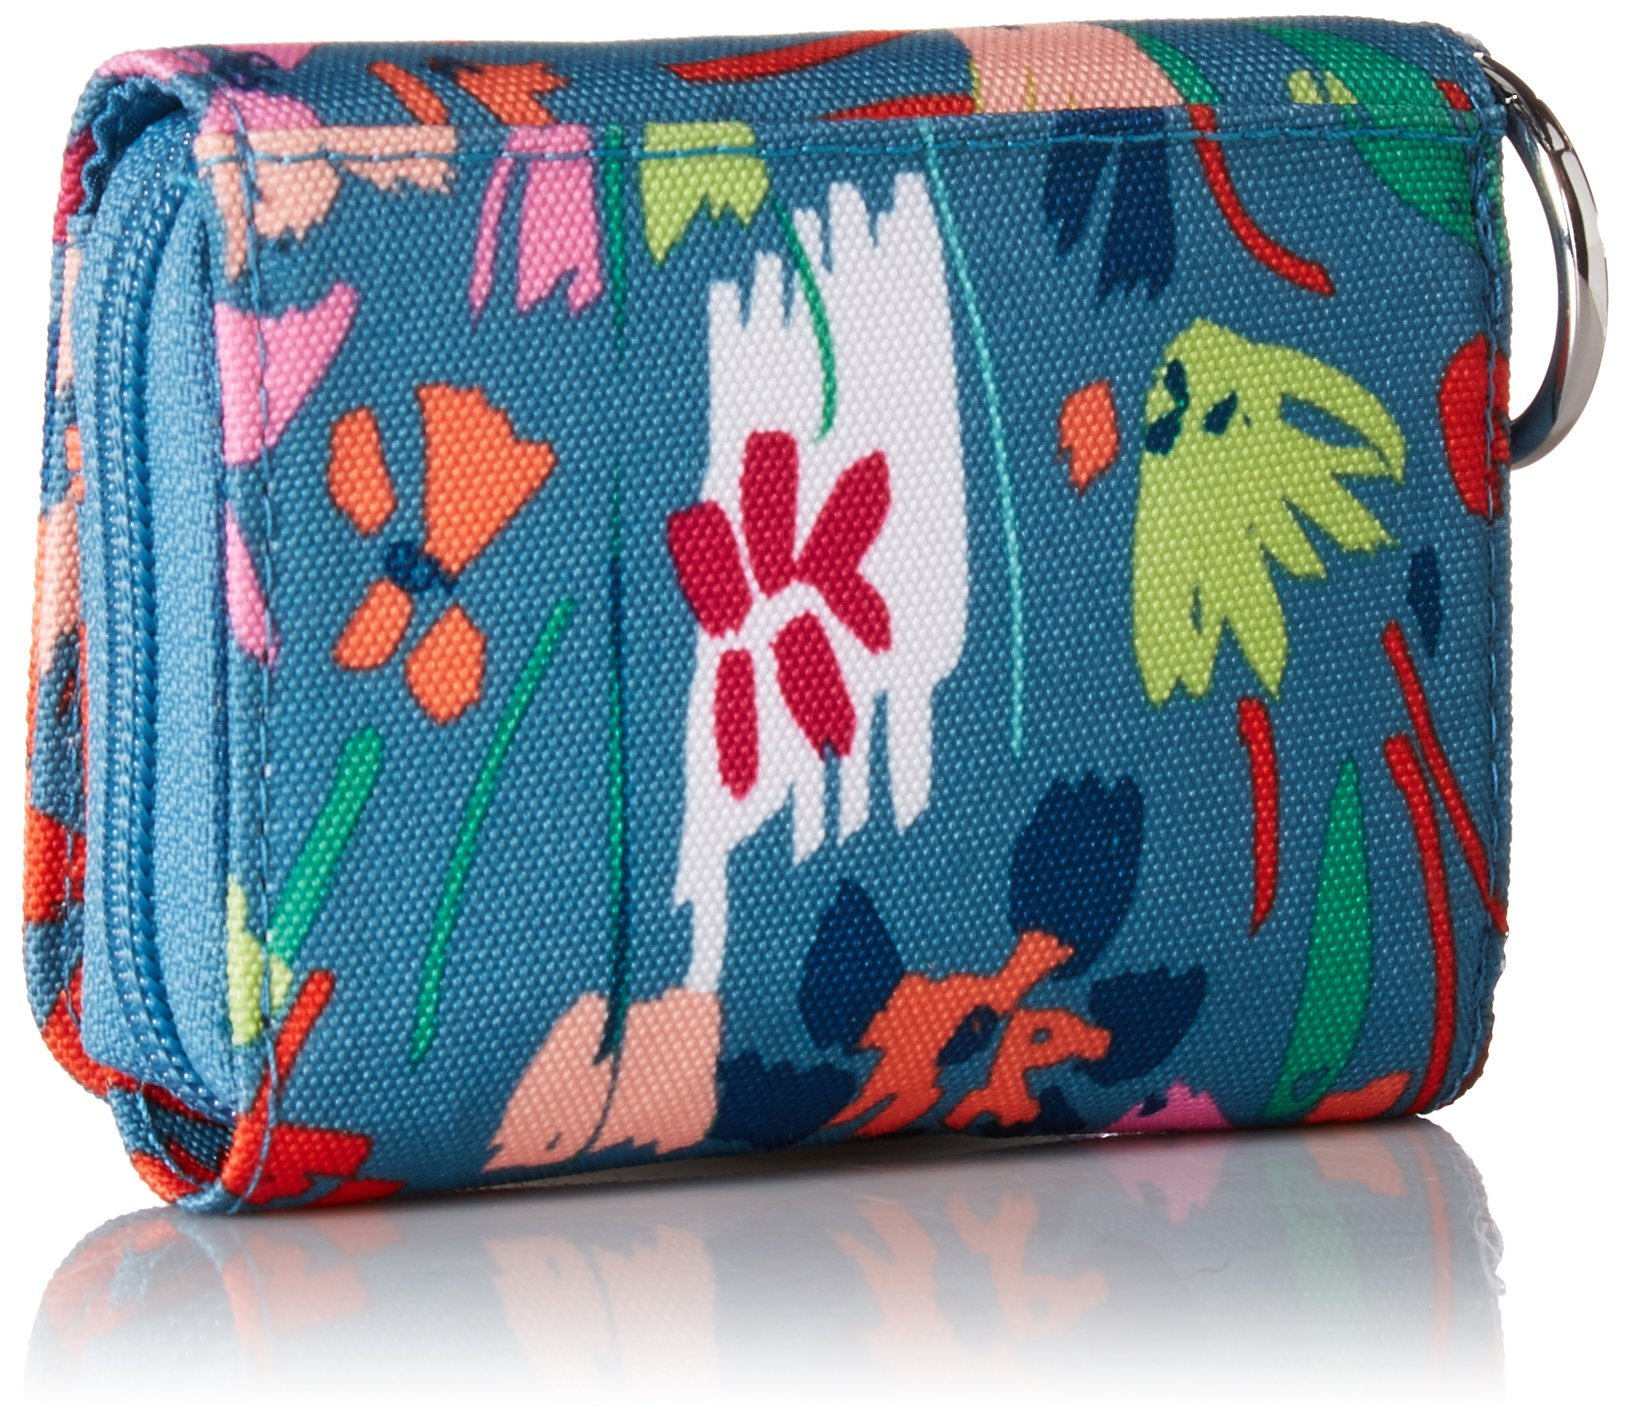 Vera Bradley Lighten Up RFID Card Case, Polyester, Superbloom Sketch by Vera Bradley (Image #2)